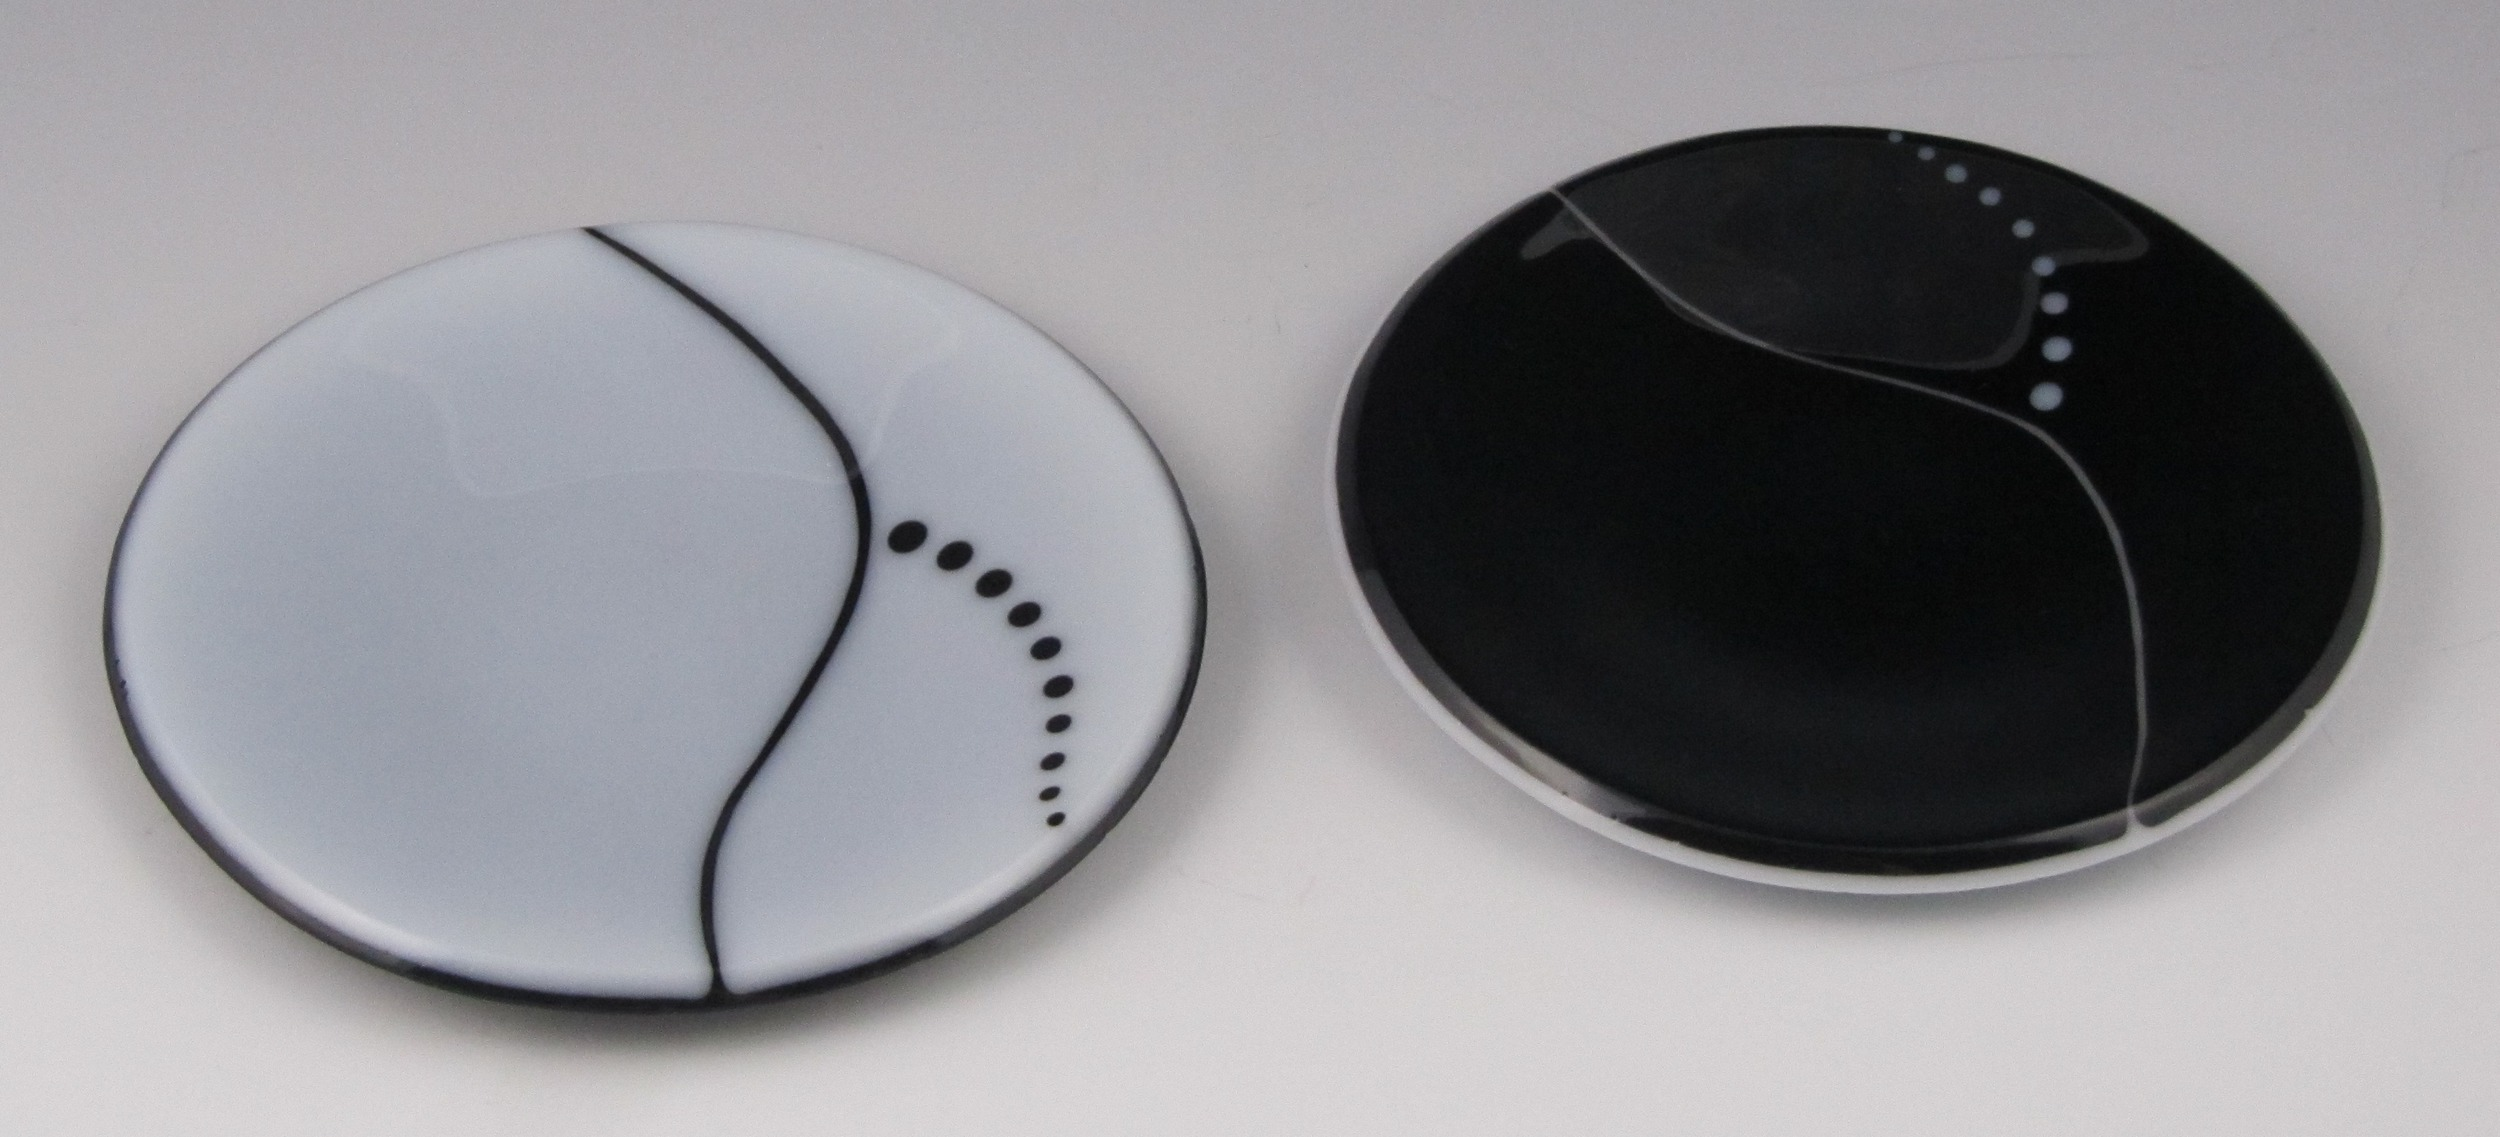 white & black curve dishes